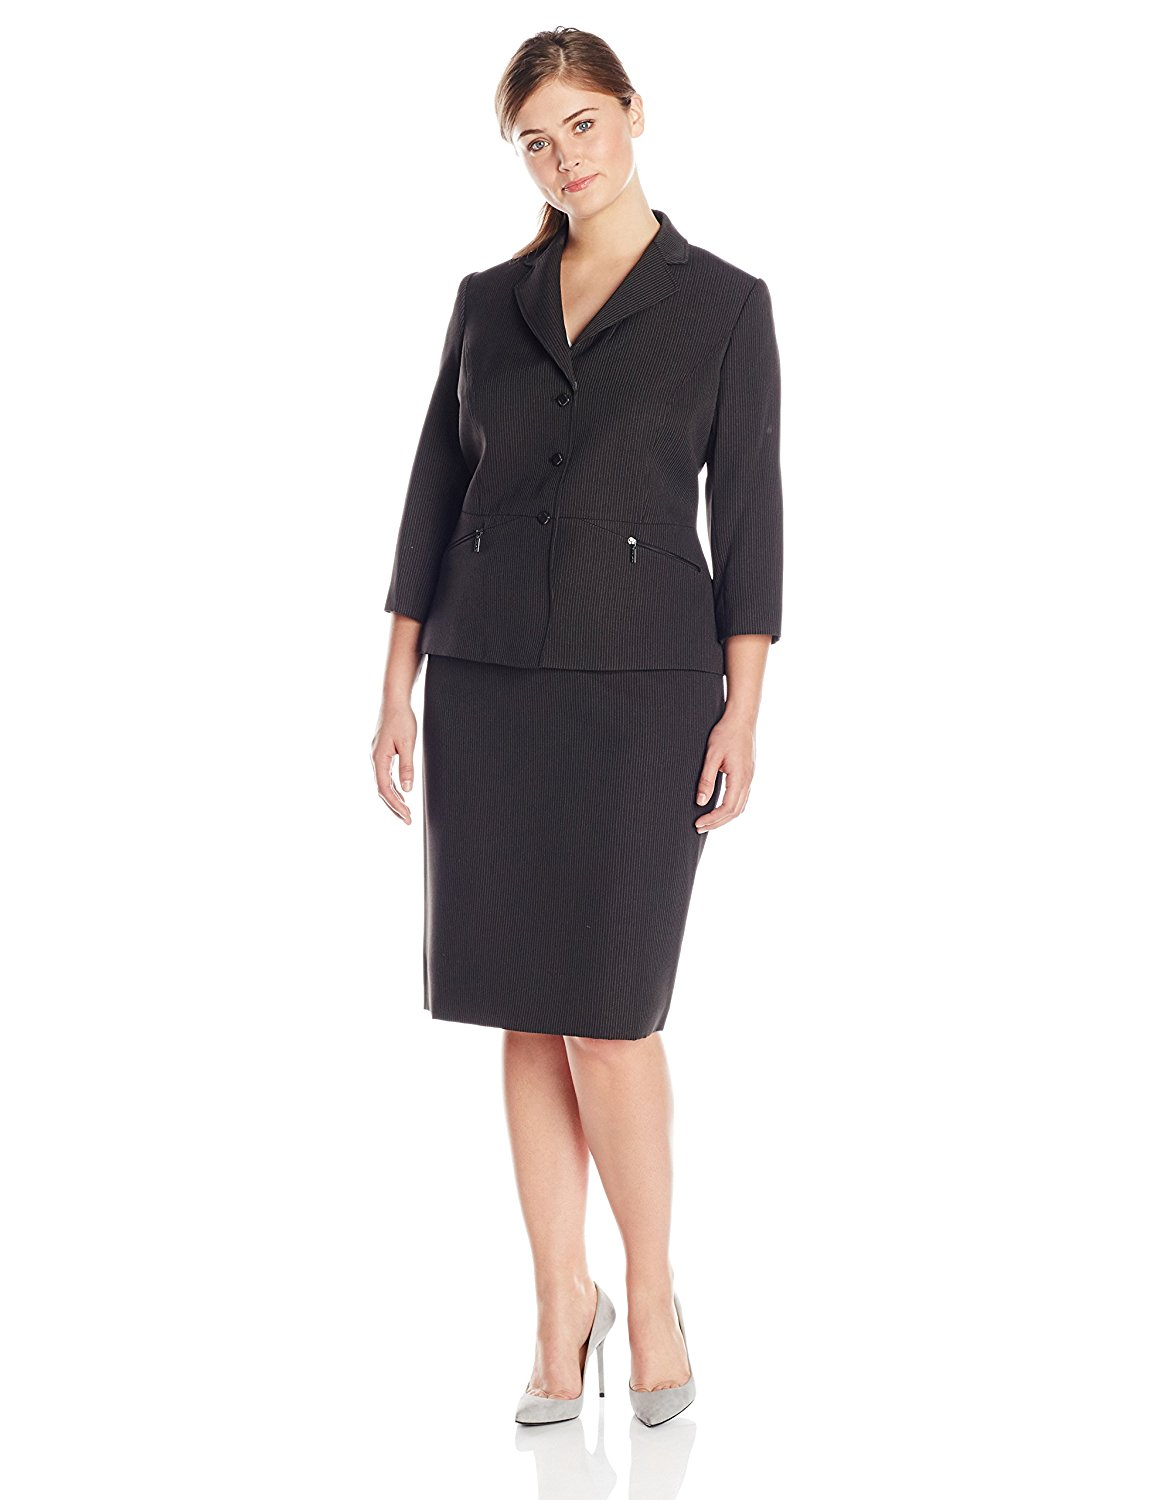 daf8c4b4a771 Get Quotations · Tahari ASL Women's Plus-Size Laura Skirt Suit